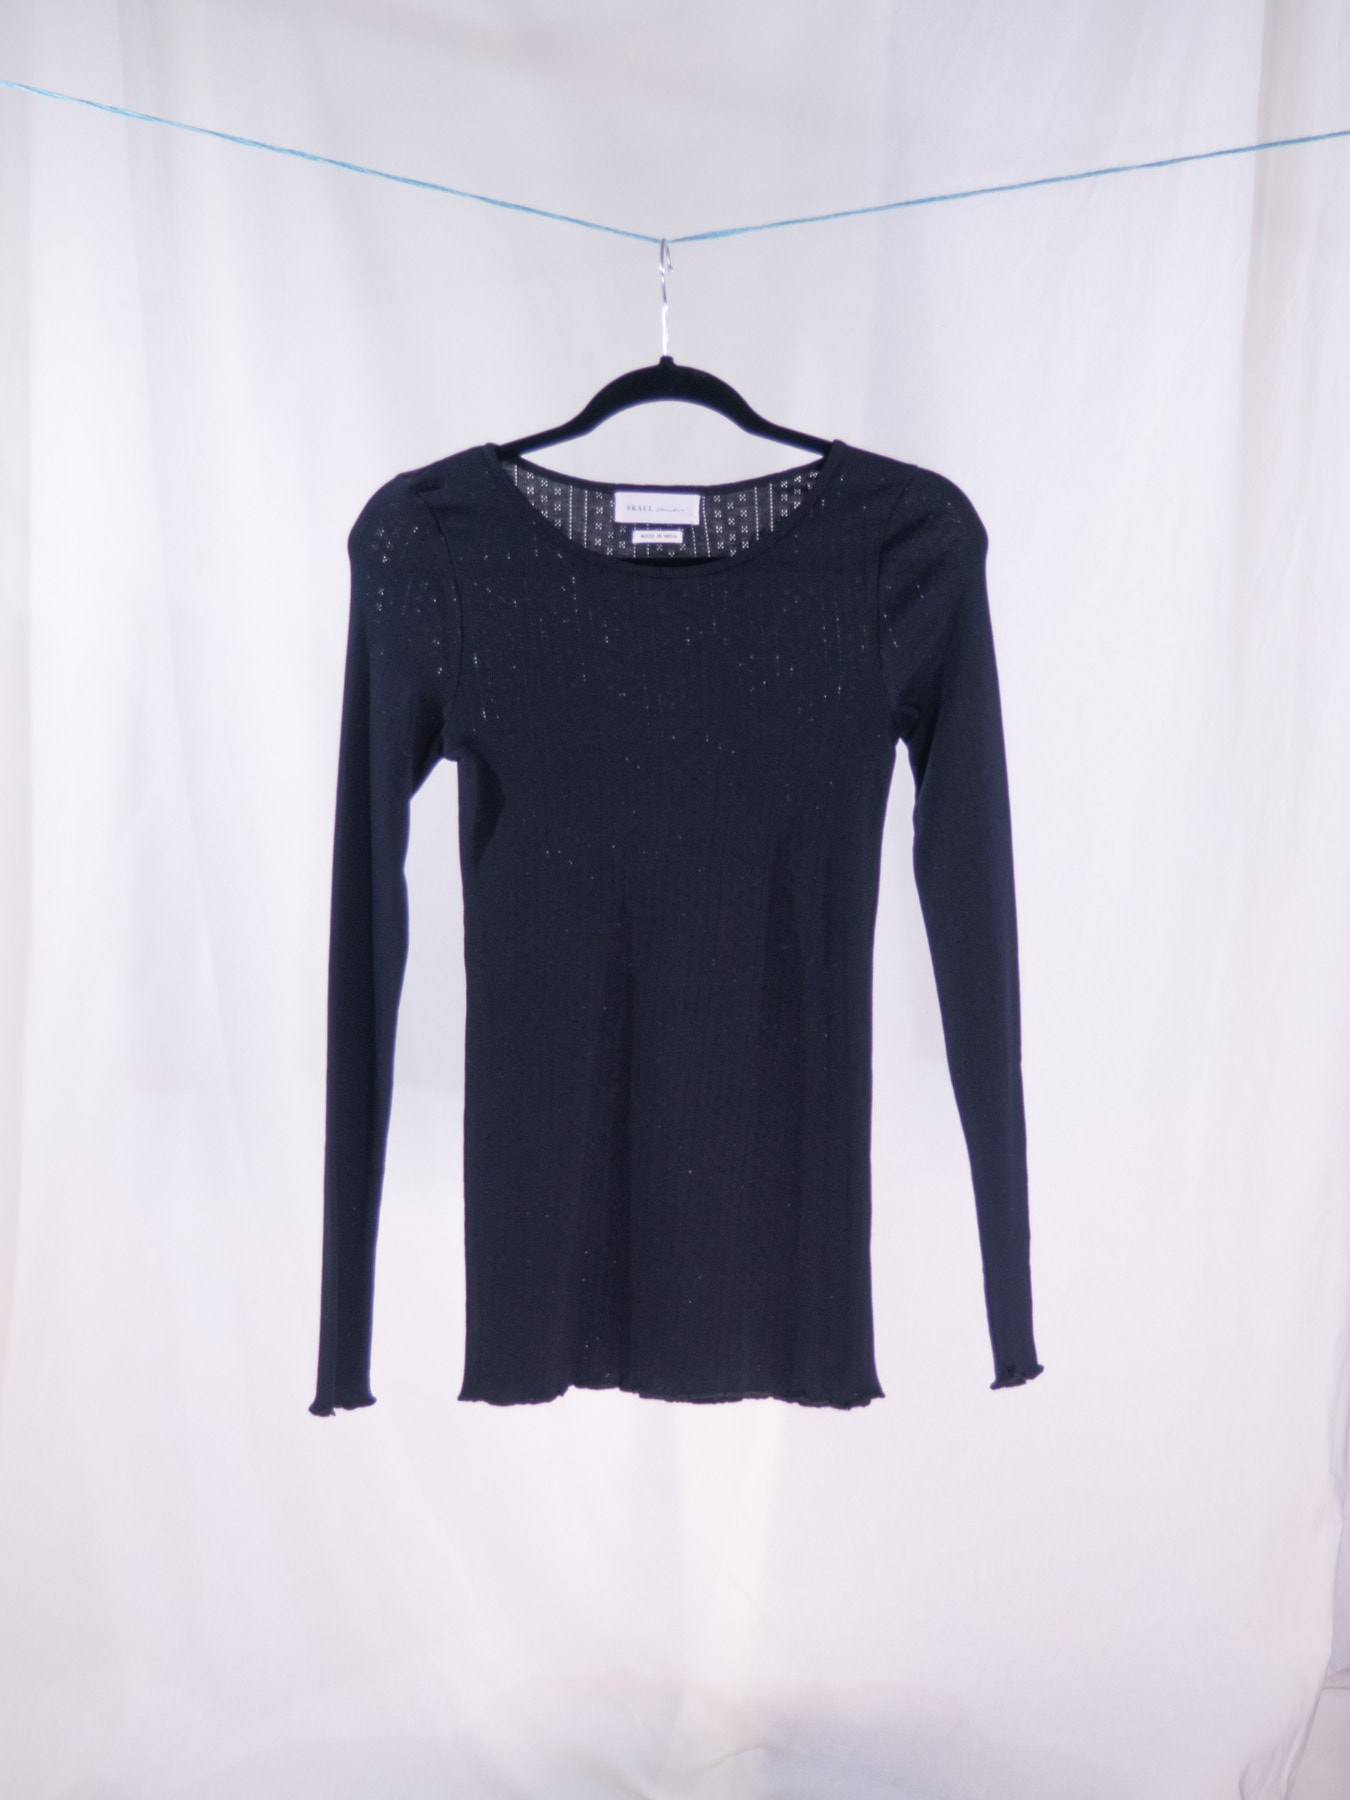 Edie blouse black